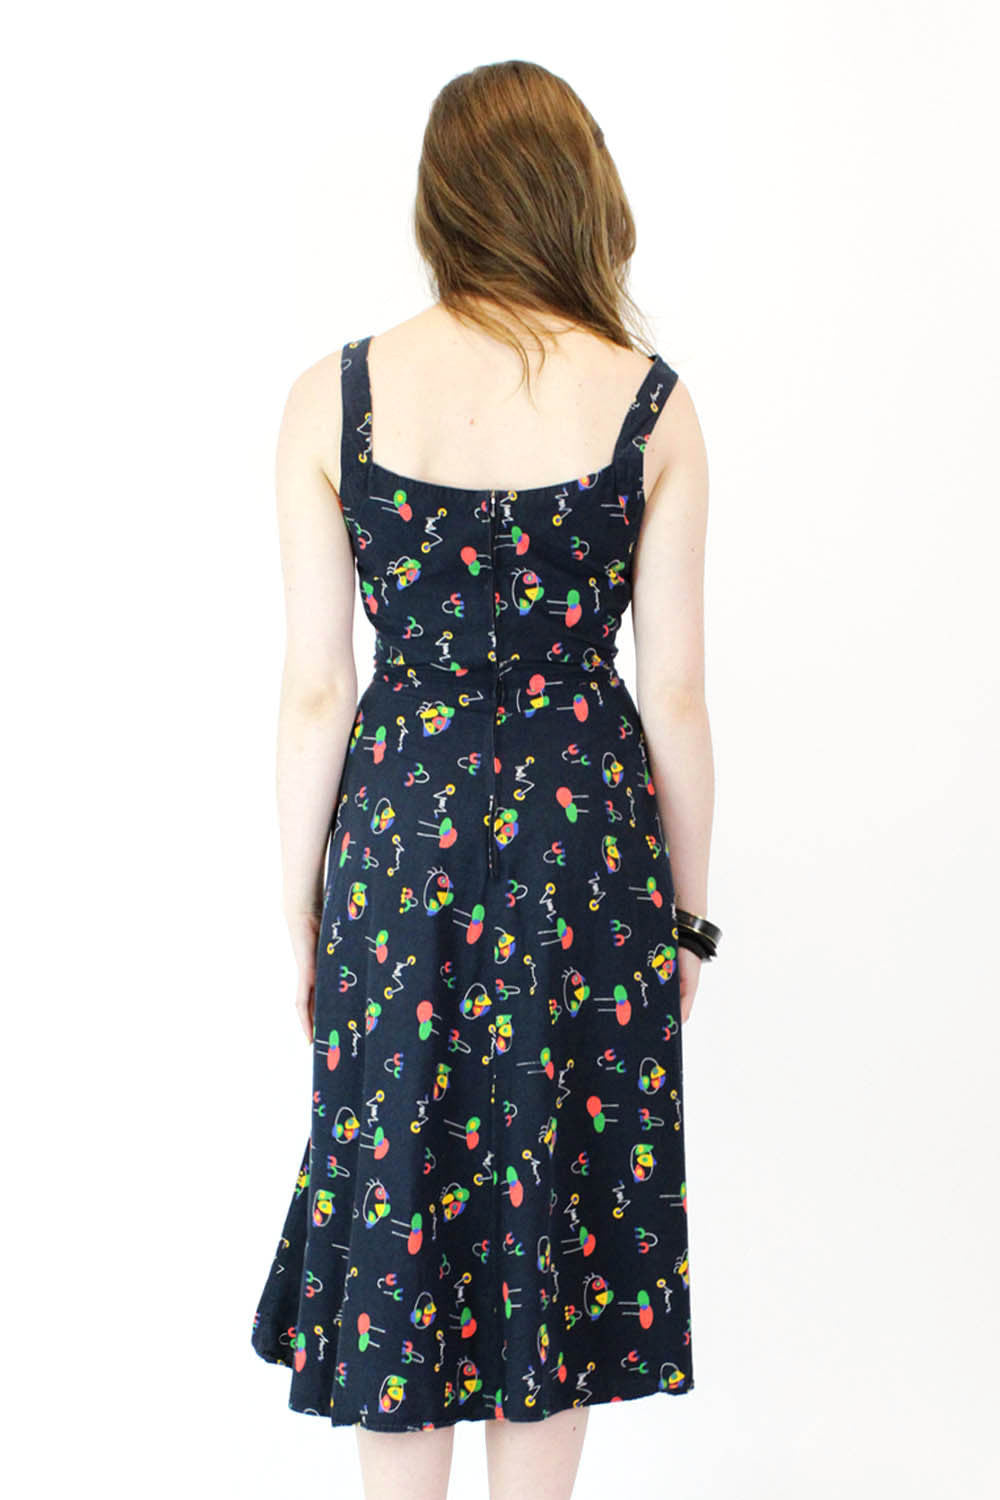 60s Miro Abstract Print Dress S